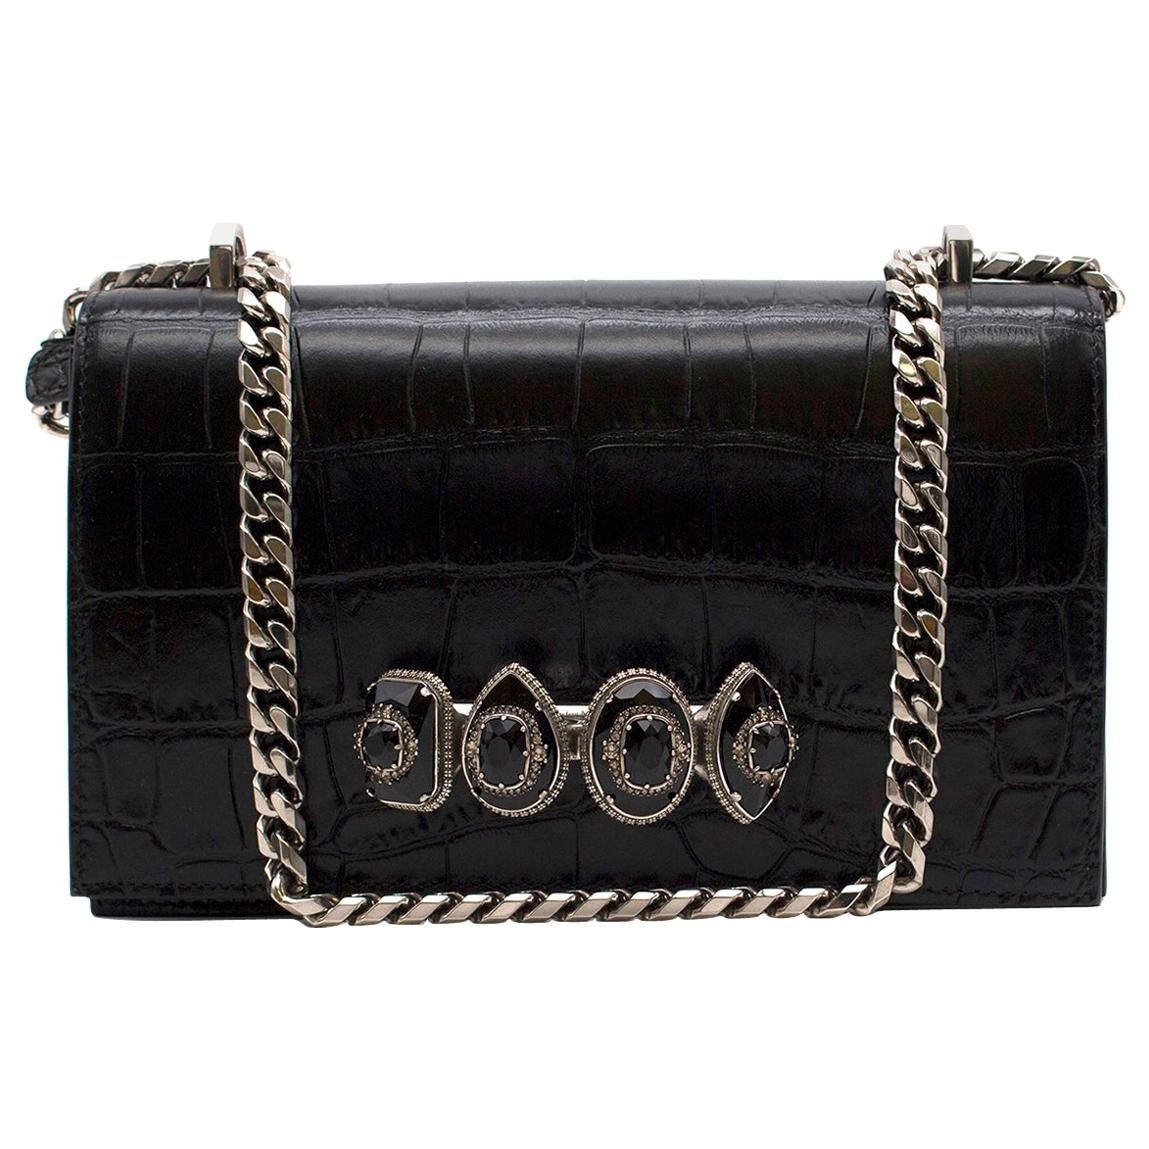 f536f3fd3b5f9 Vintage Alexander McQueen Fashion: Clothing, Bags & More - 898 For Sale at  1stdibs